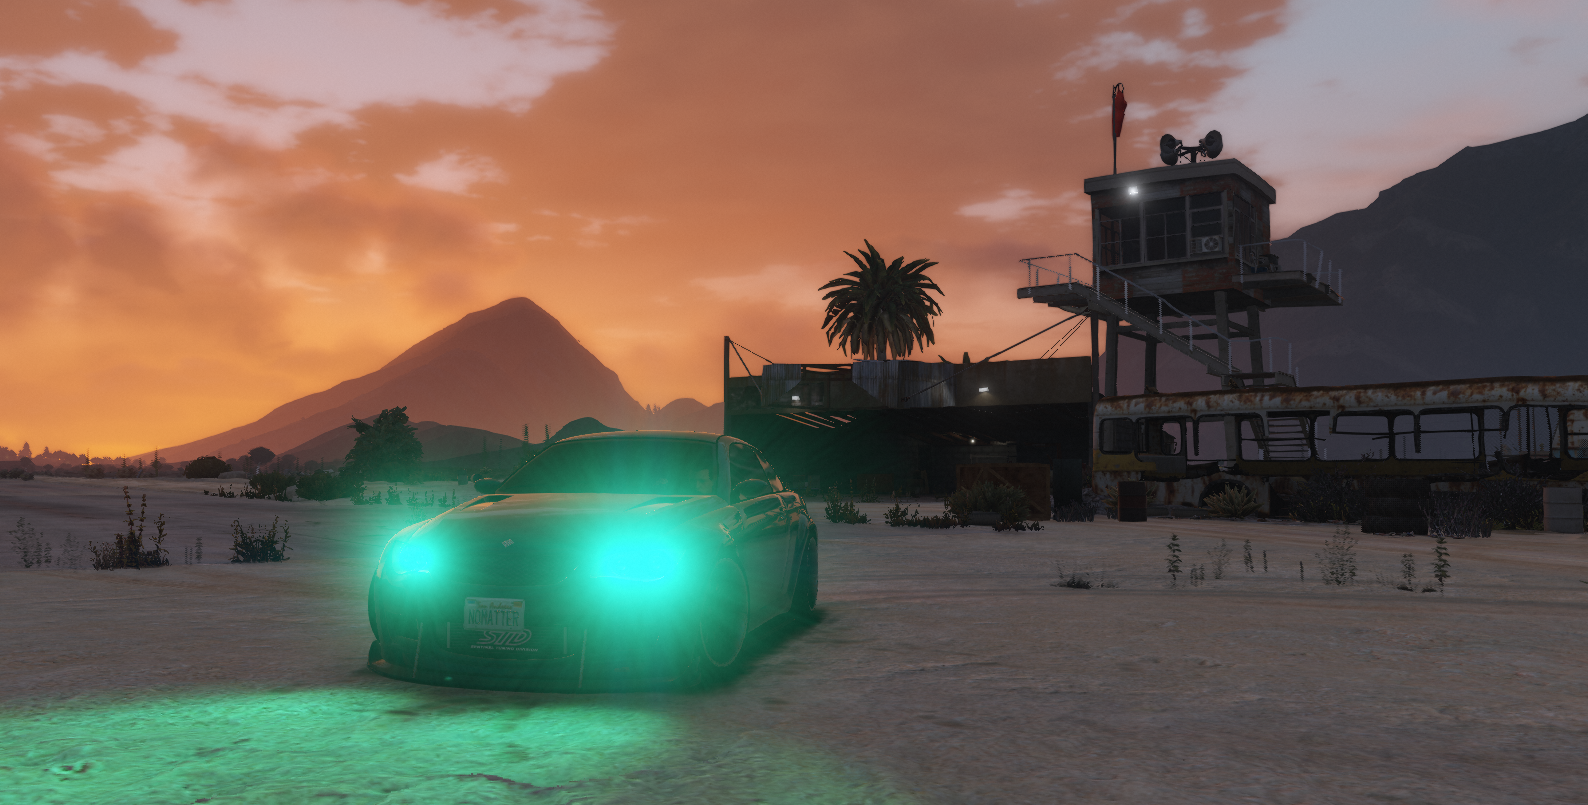 Sandy Shores Airfield Sponsored